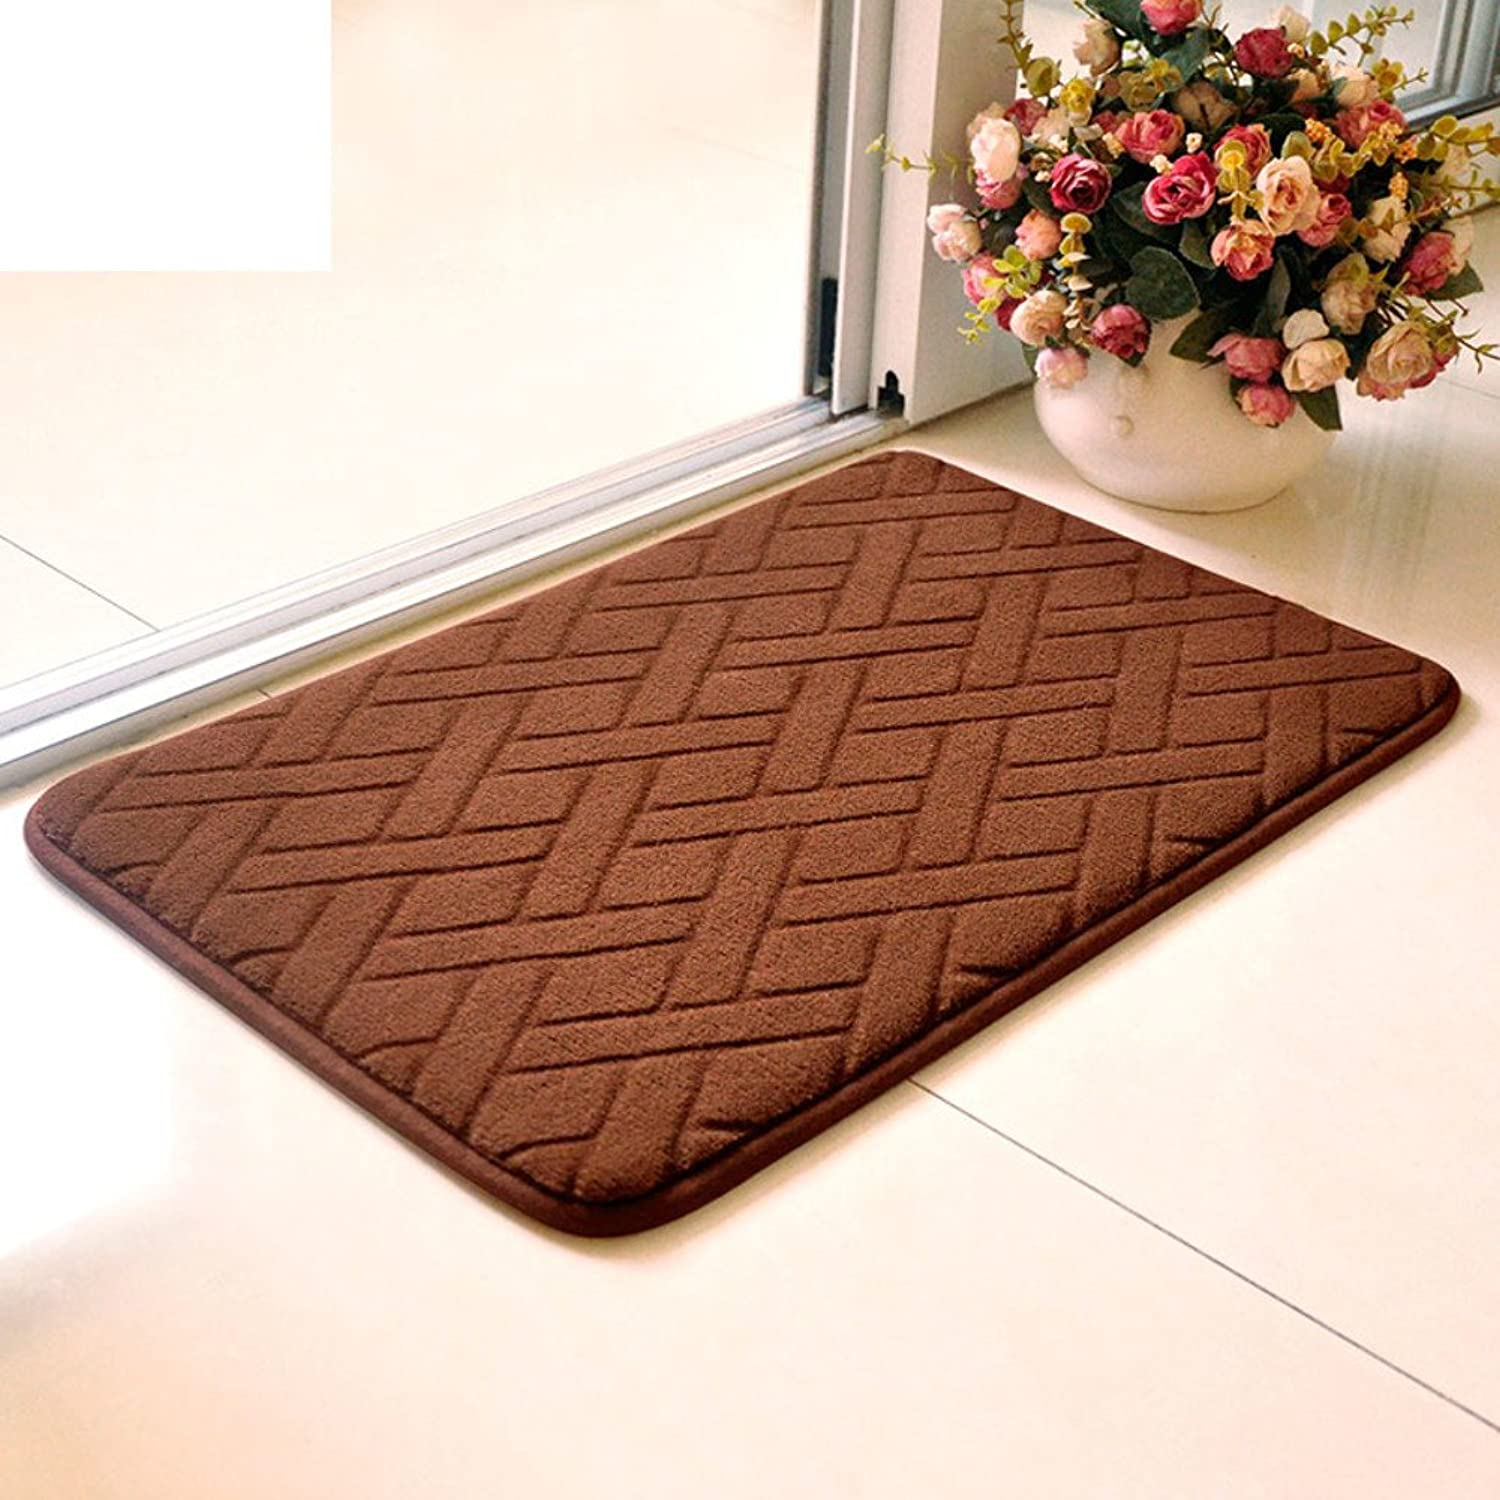 Water-absorbing mats thicken the hall mat kitchen restroom bathroom non-slip mats foot pad-C 120x140cm(47x55inch)